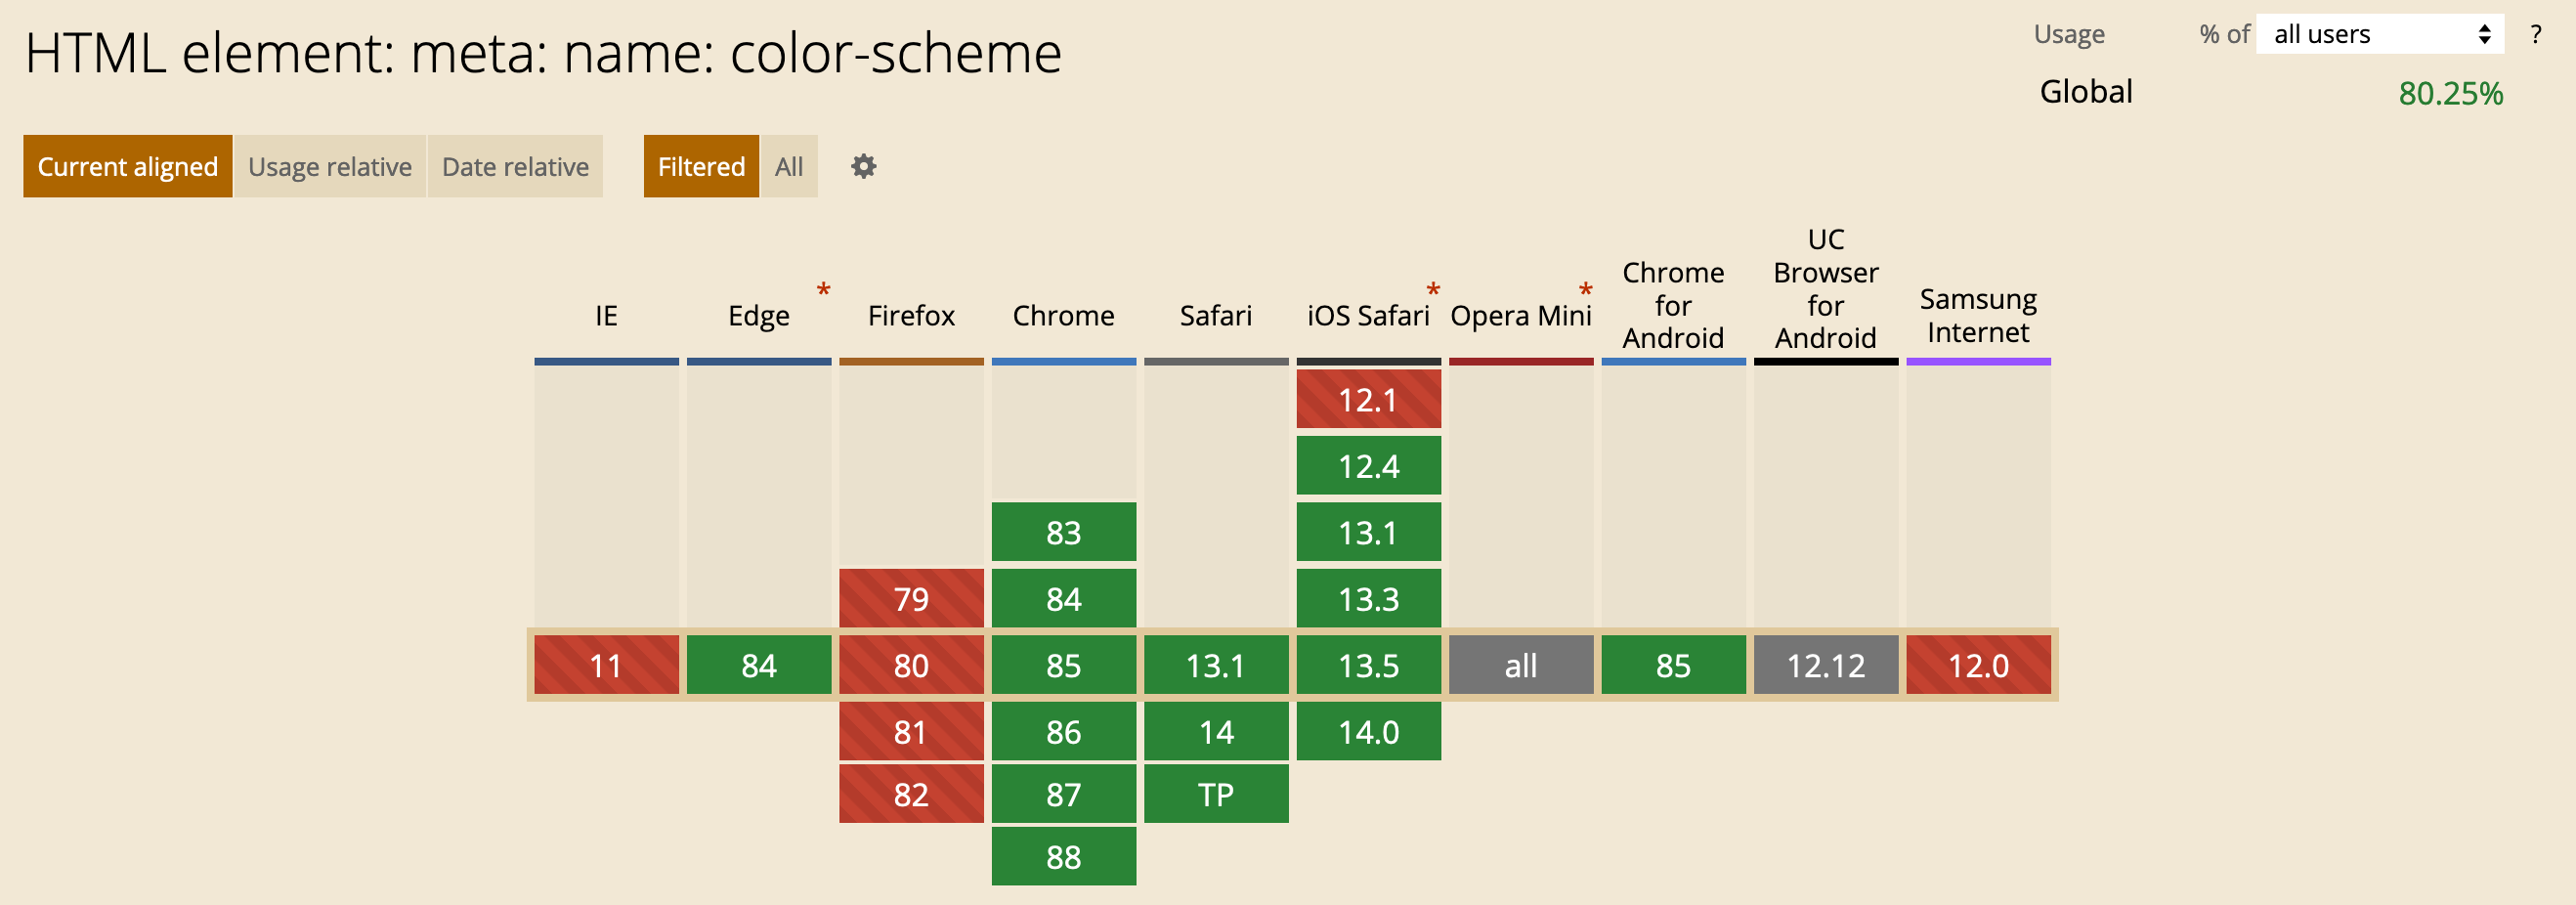 caniuse.com support table showing that color-scheme is mainly supported only with Firefox missing